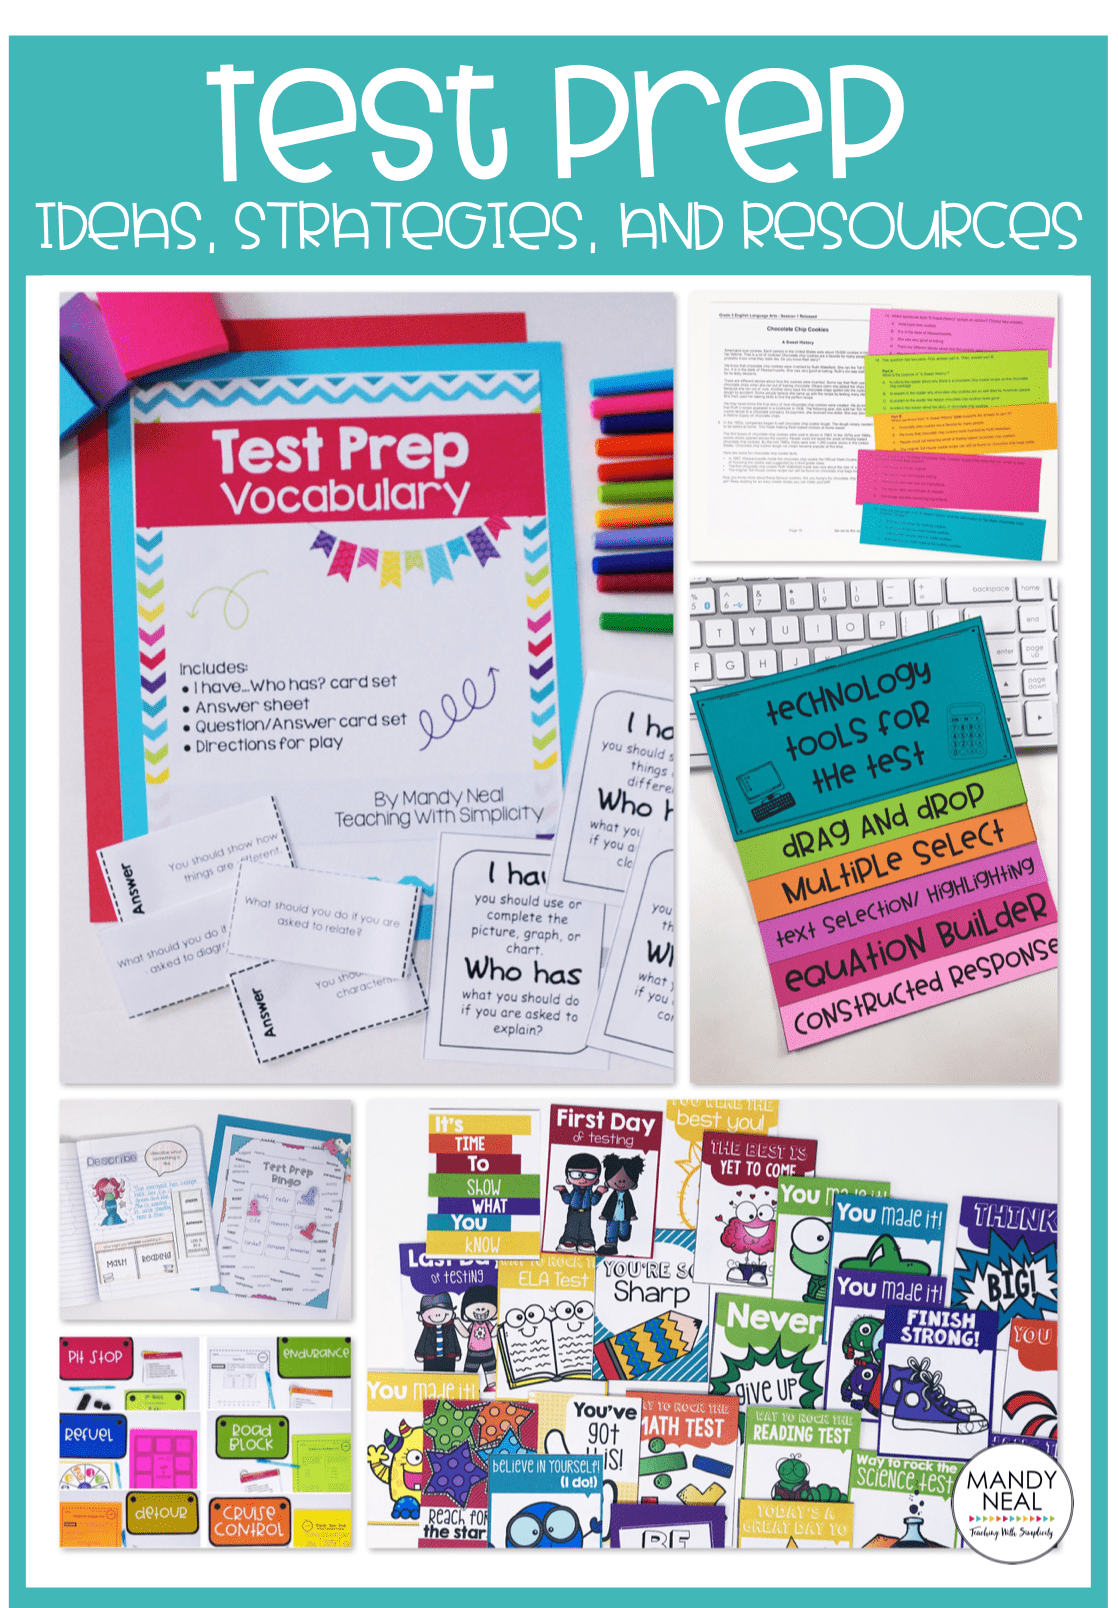 , Test Prep Ideas, Strategies, and Resources